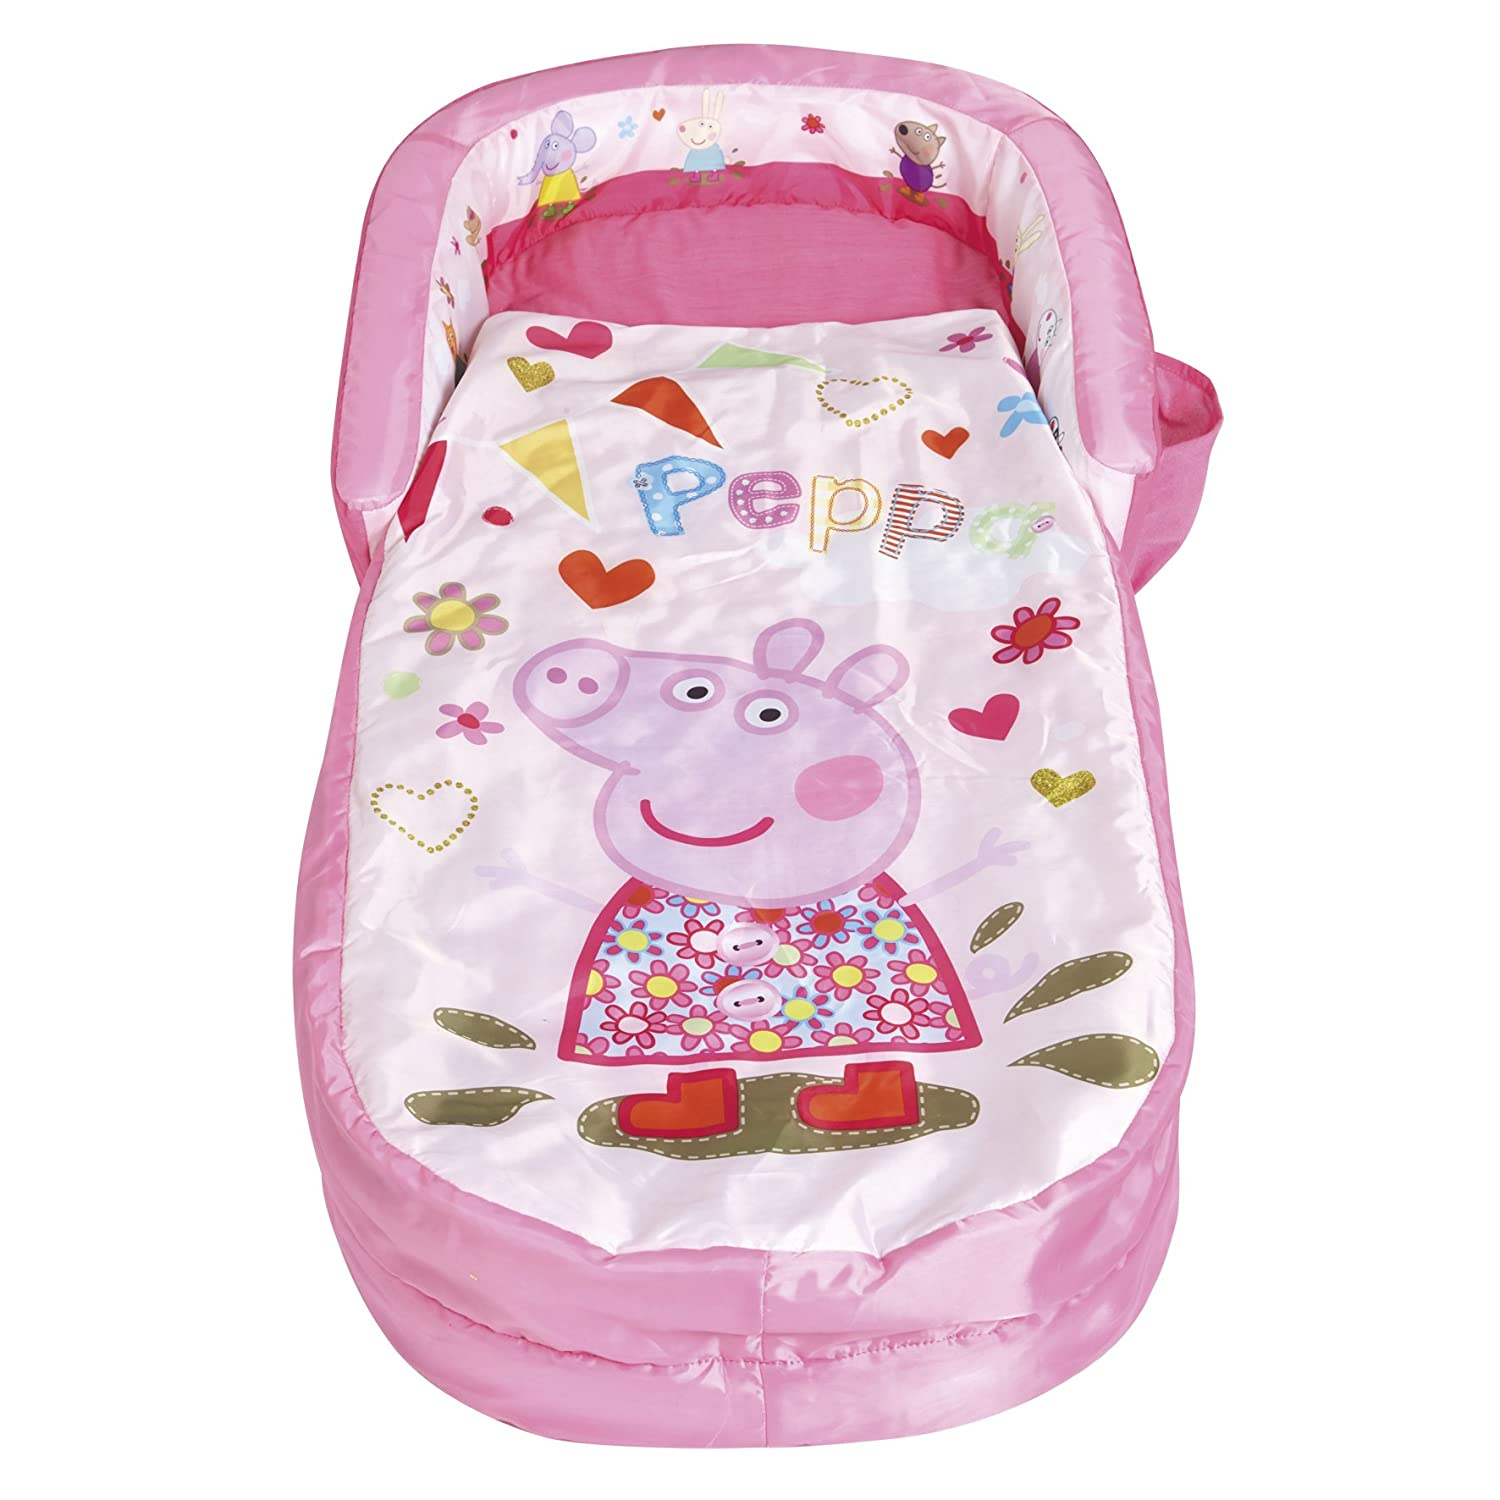 Peppa Pig My First ReadyBed - Toddler Airbed and Sleeping Bag in one Worlds Apart 401PIP